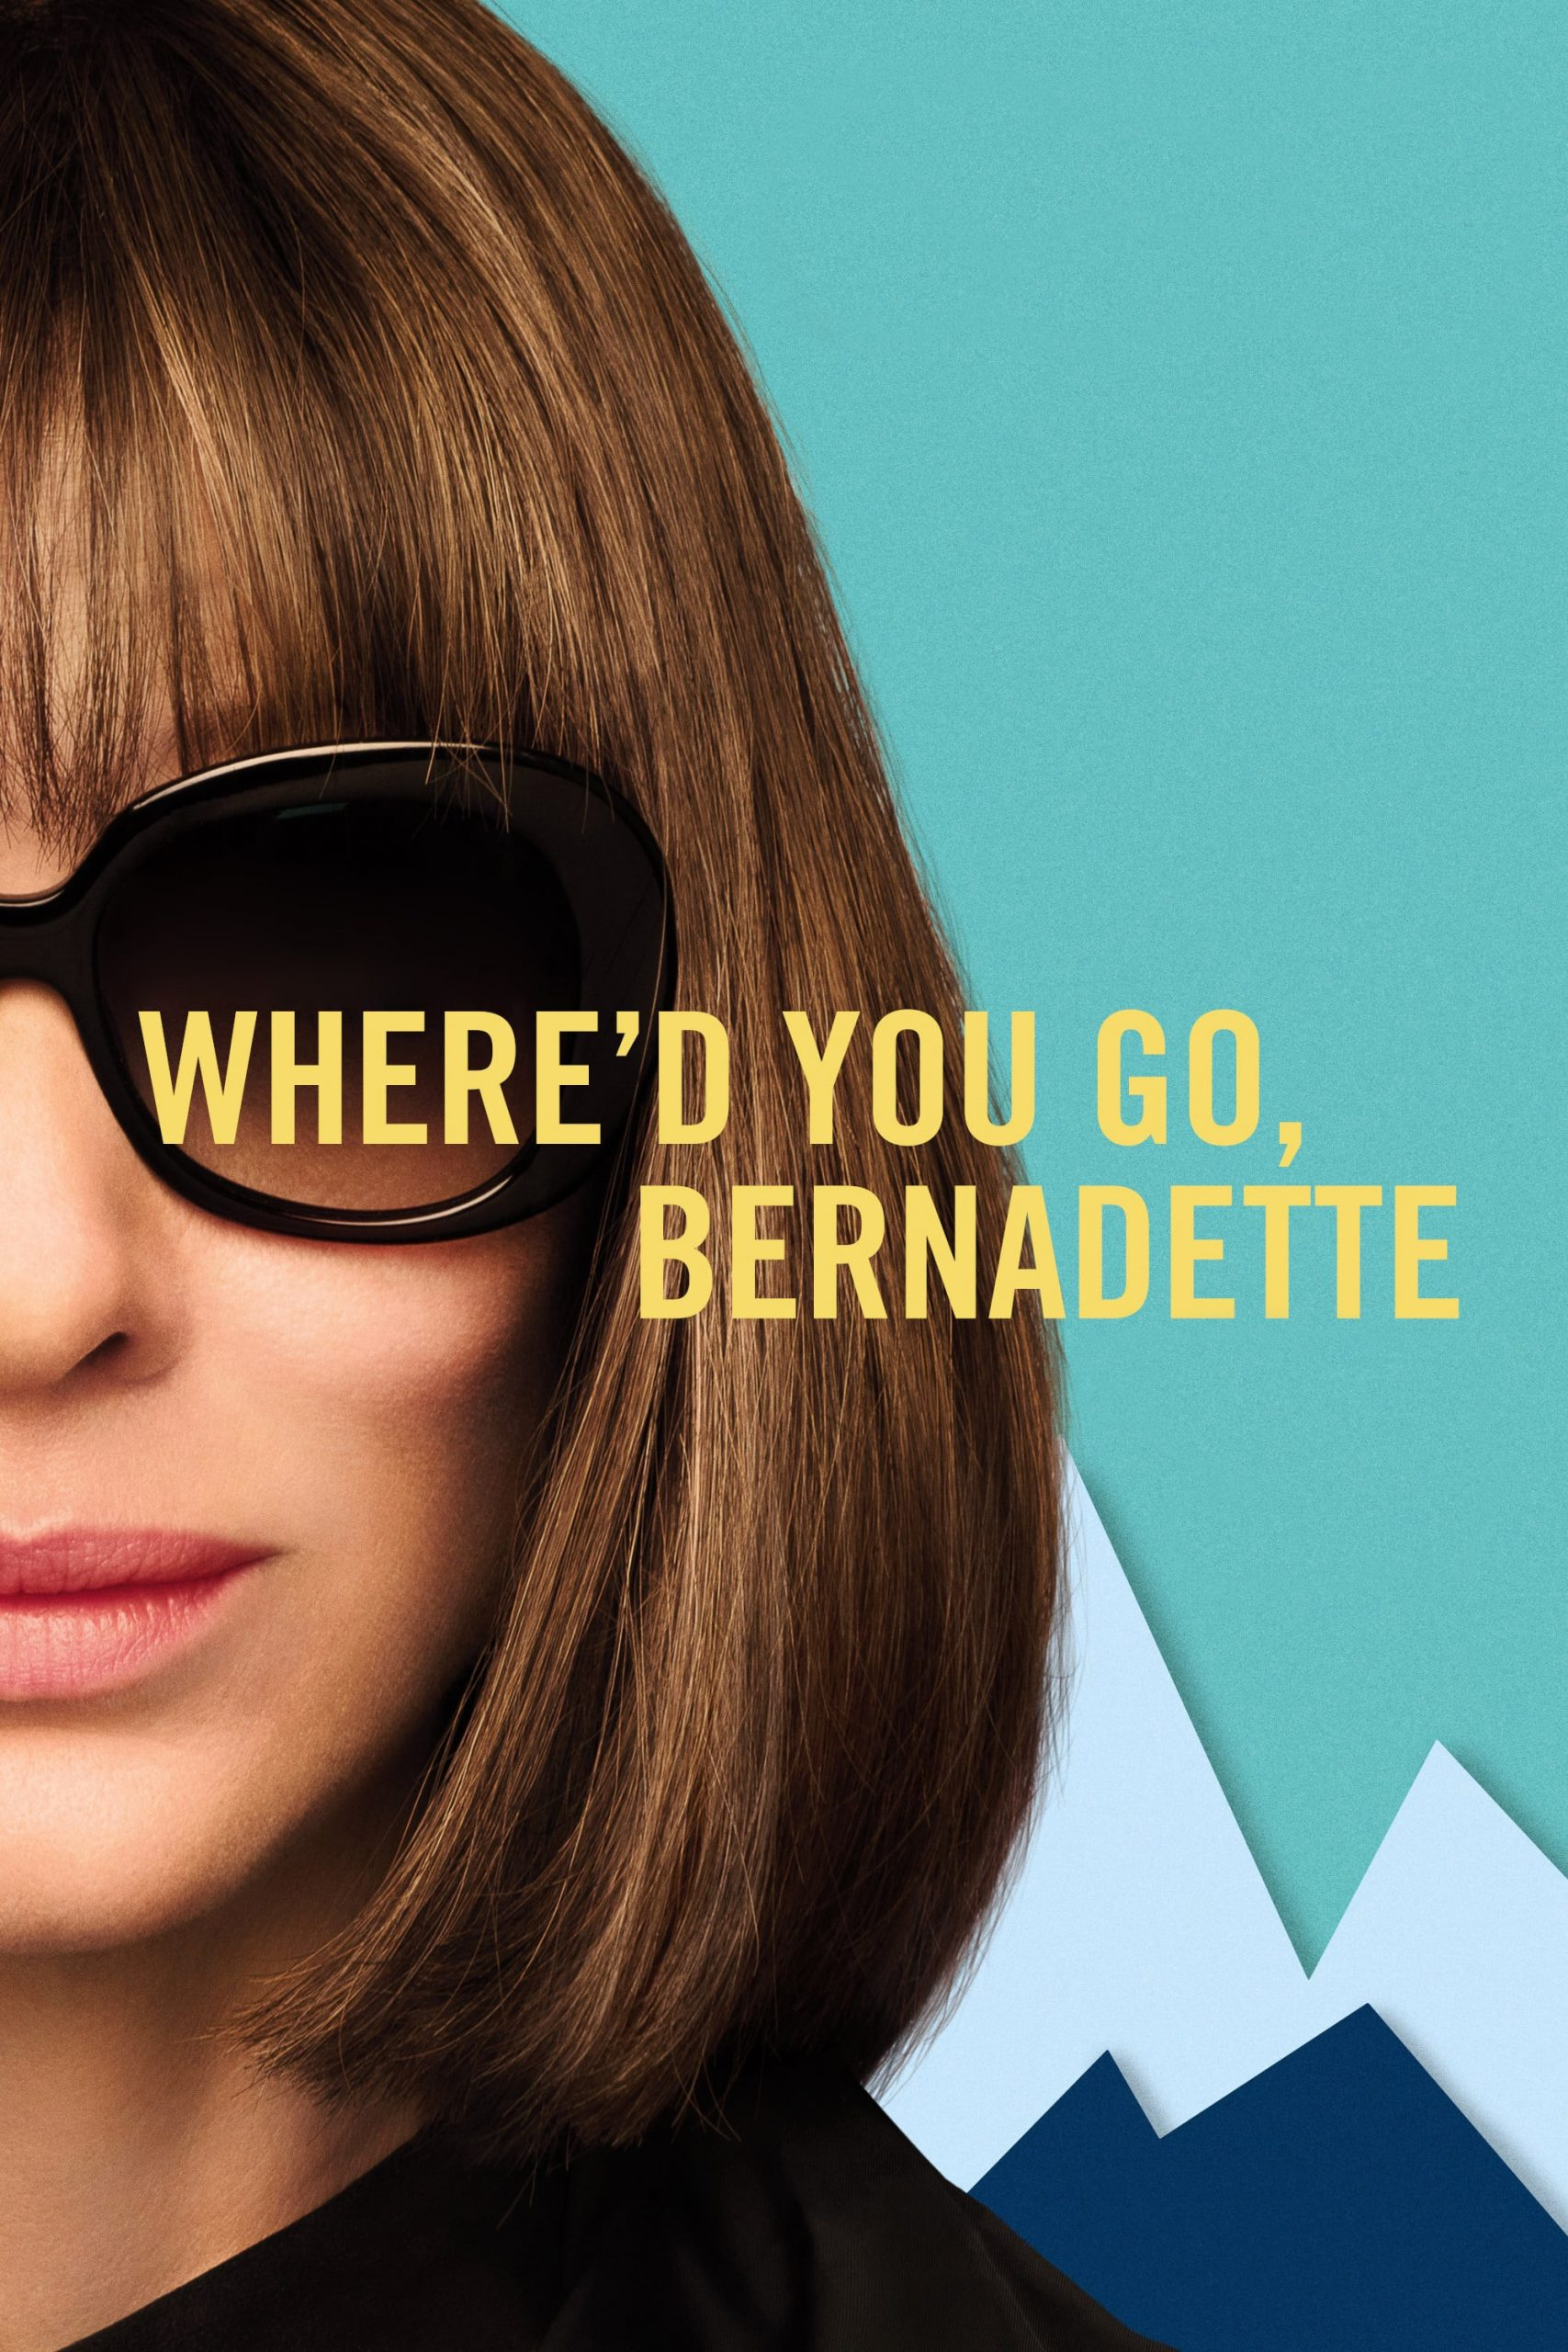 دانلود فیلم Where'd You Go, Bernadette 2019